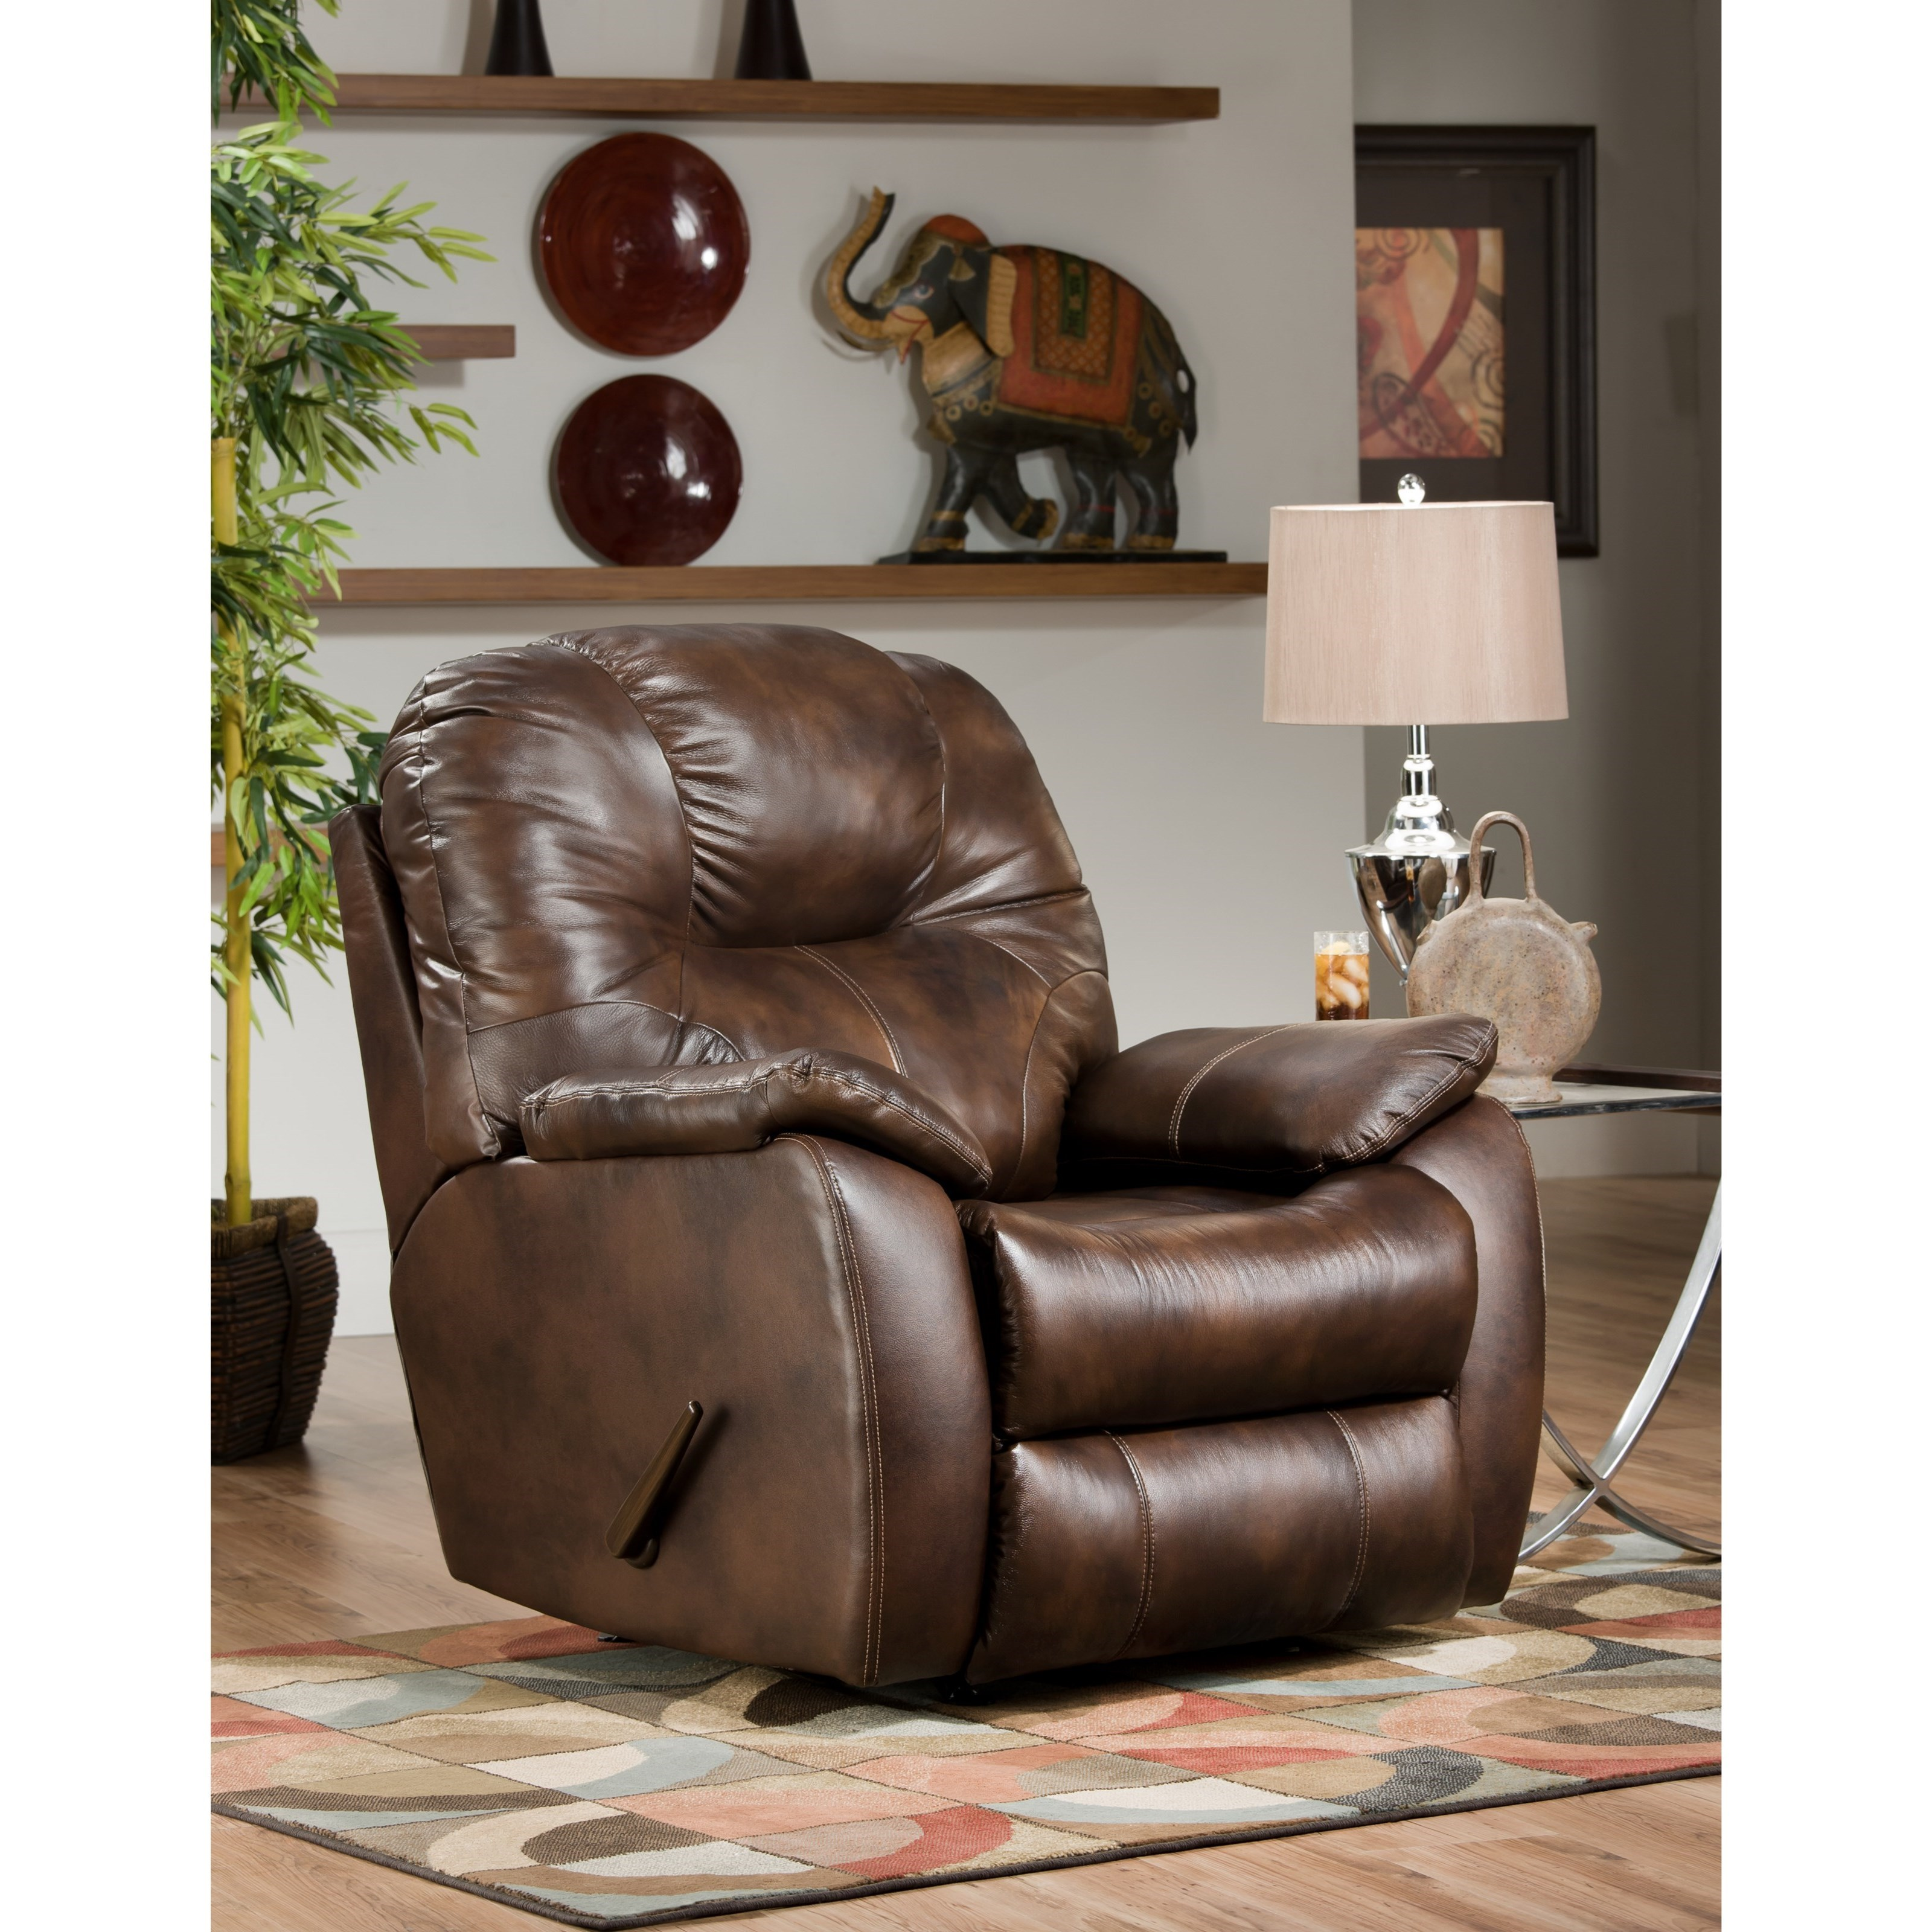 Avalon Rocker Recliner by Southern Motion at Rooms and Rest